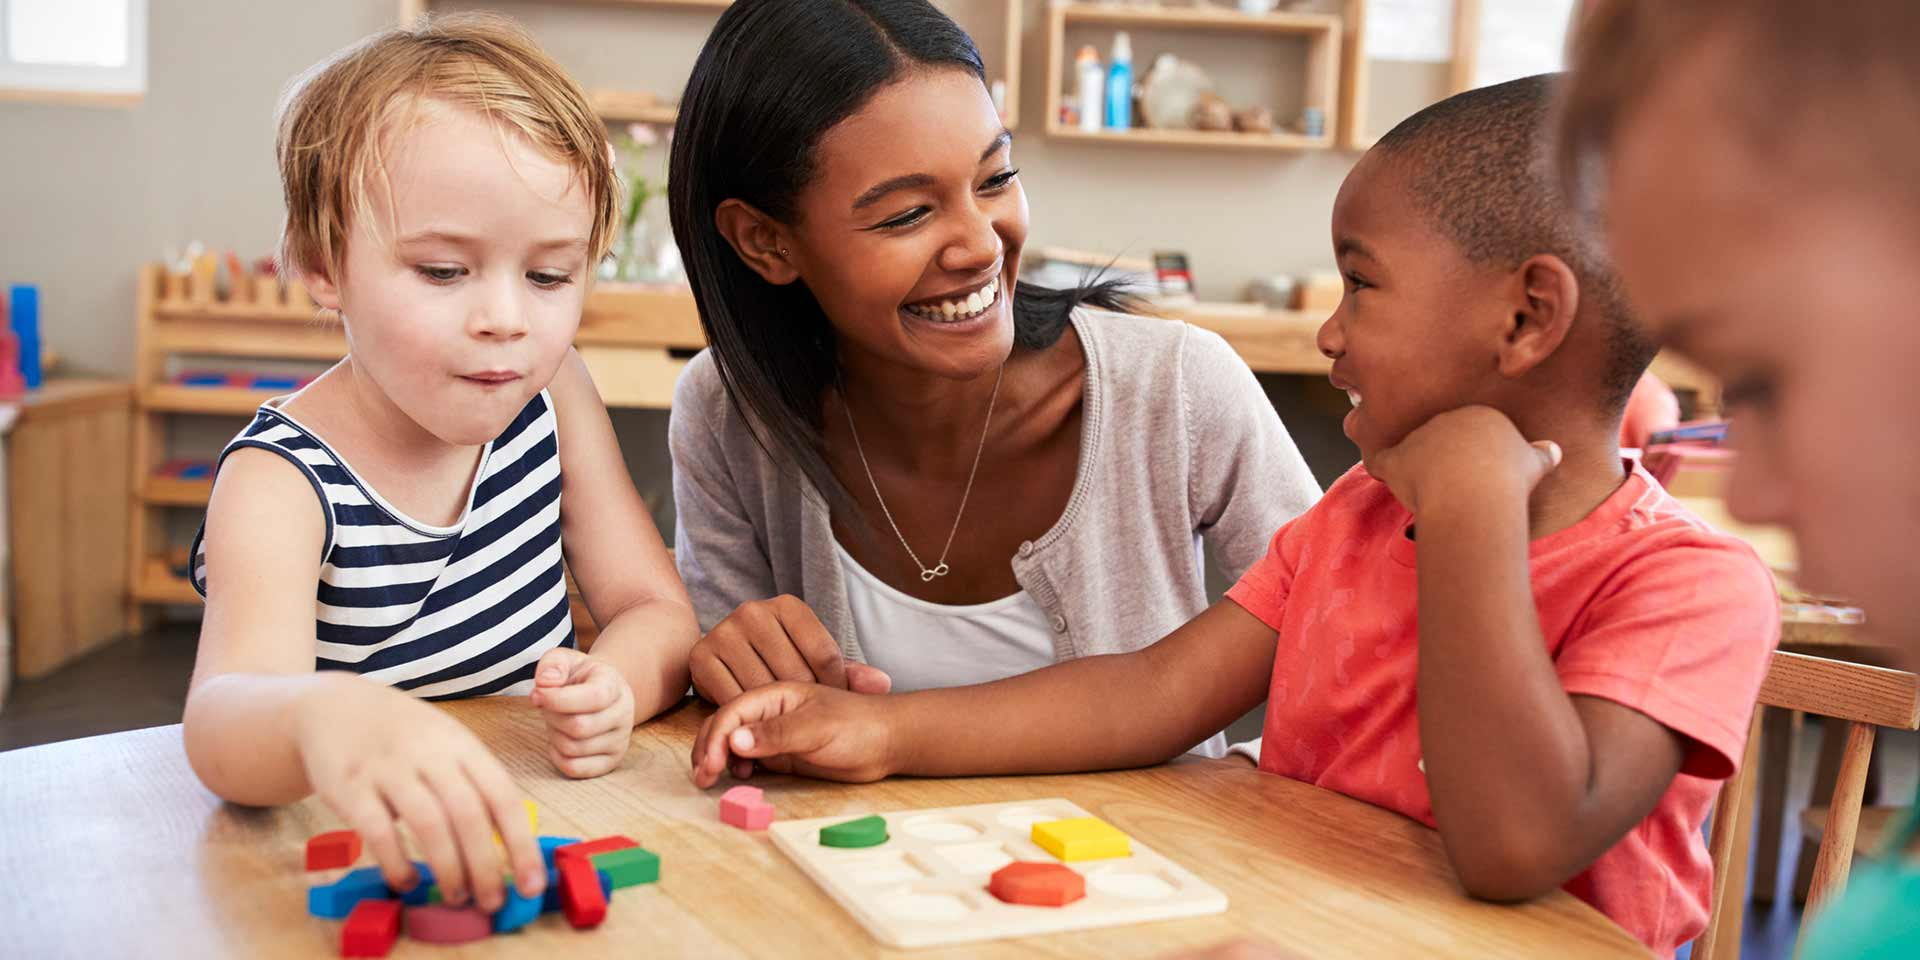 How to Optimize Your Daycare Schedule for Staff, Parents & Children